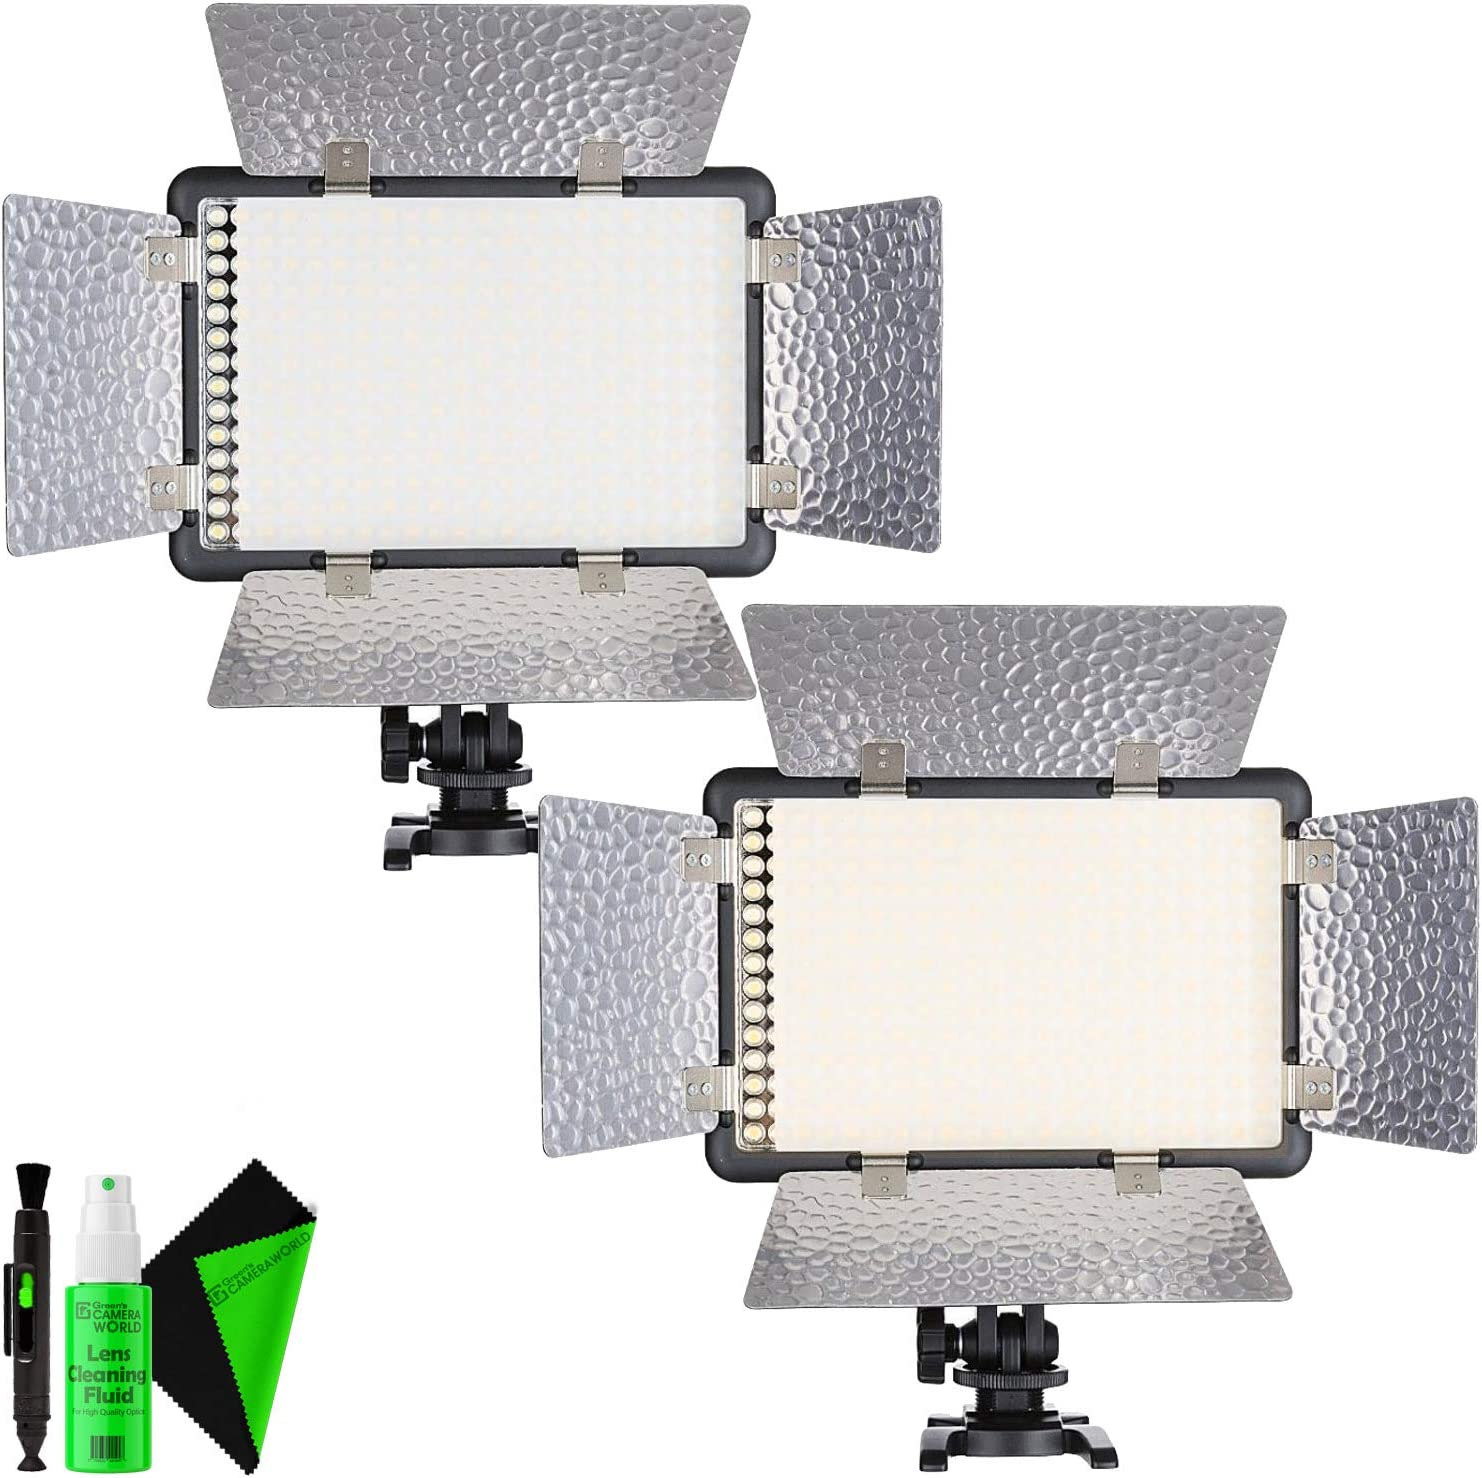 Godox LED308W 5600K LED Video Light for Camera Camcorder Godox LED308W 5600K LED Video Light for Camera Camcorder White Version Yellow Version